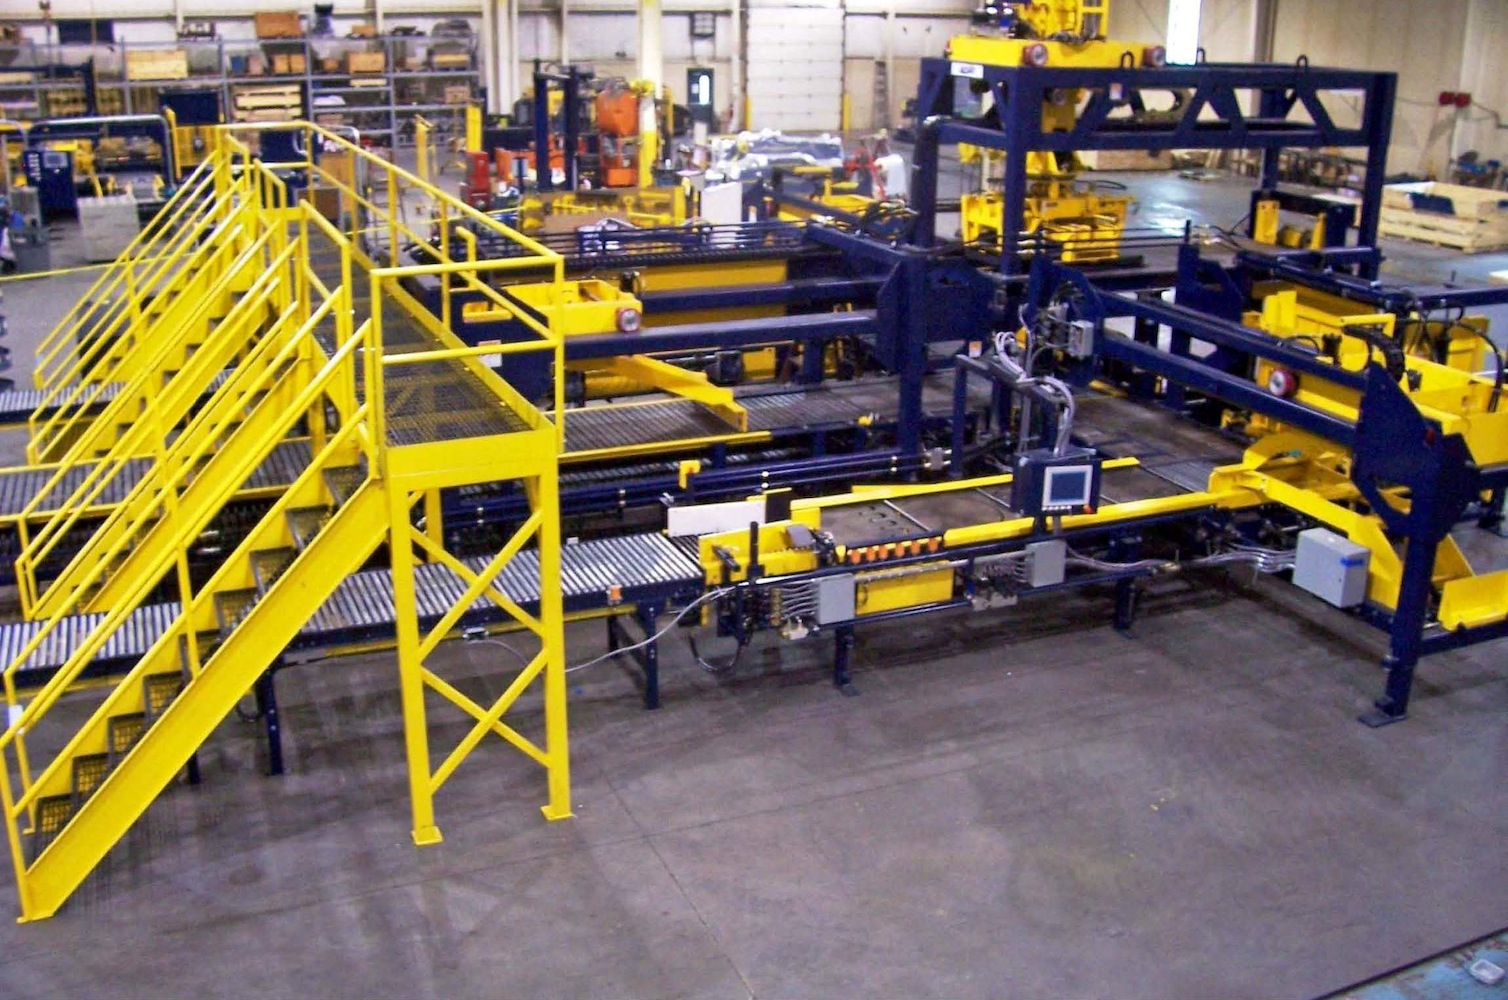 Machine Walkover With Stairs